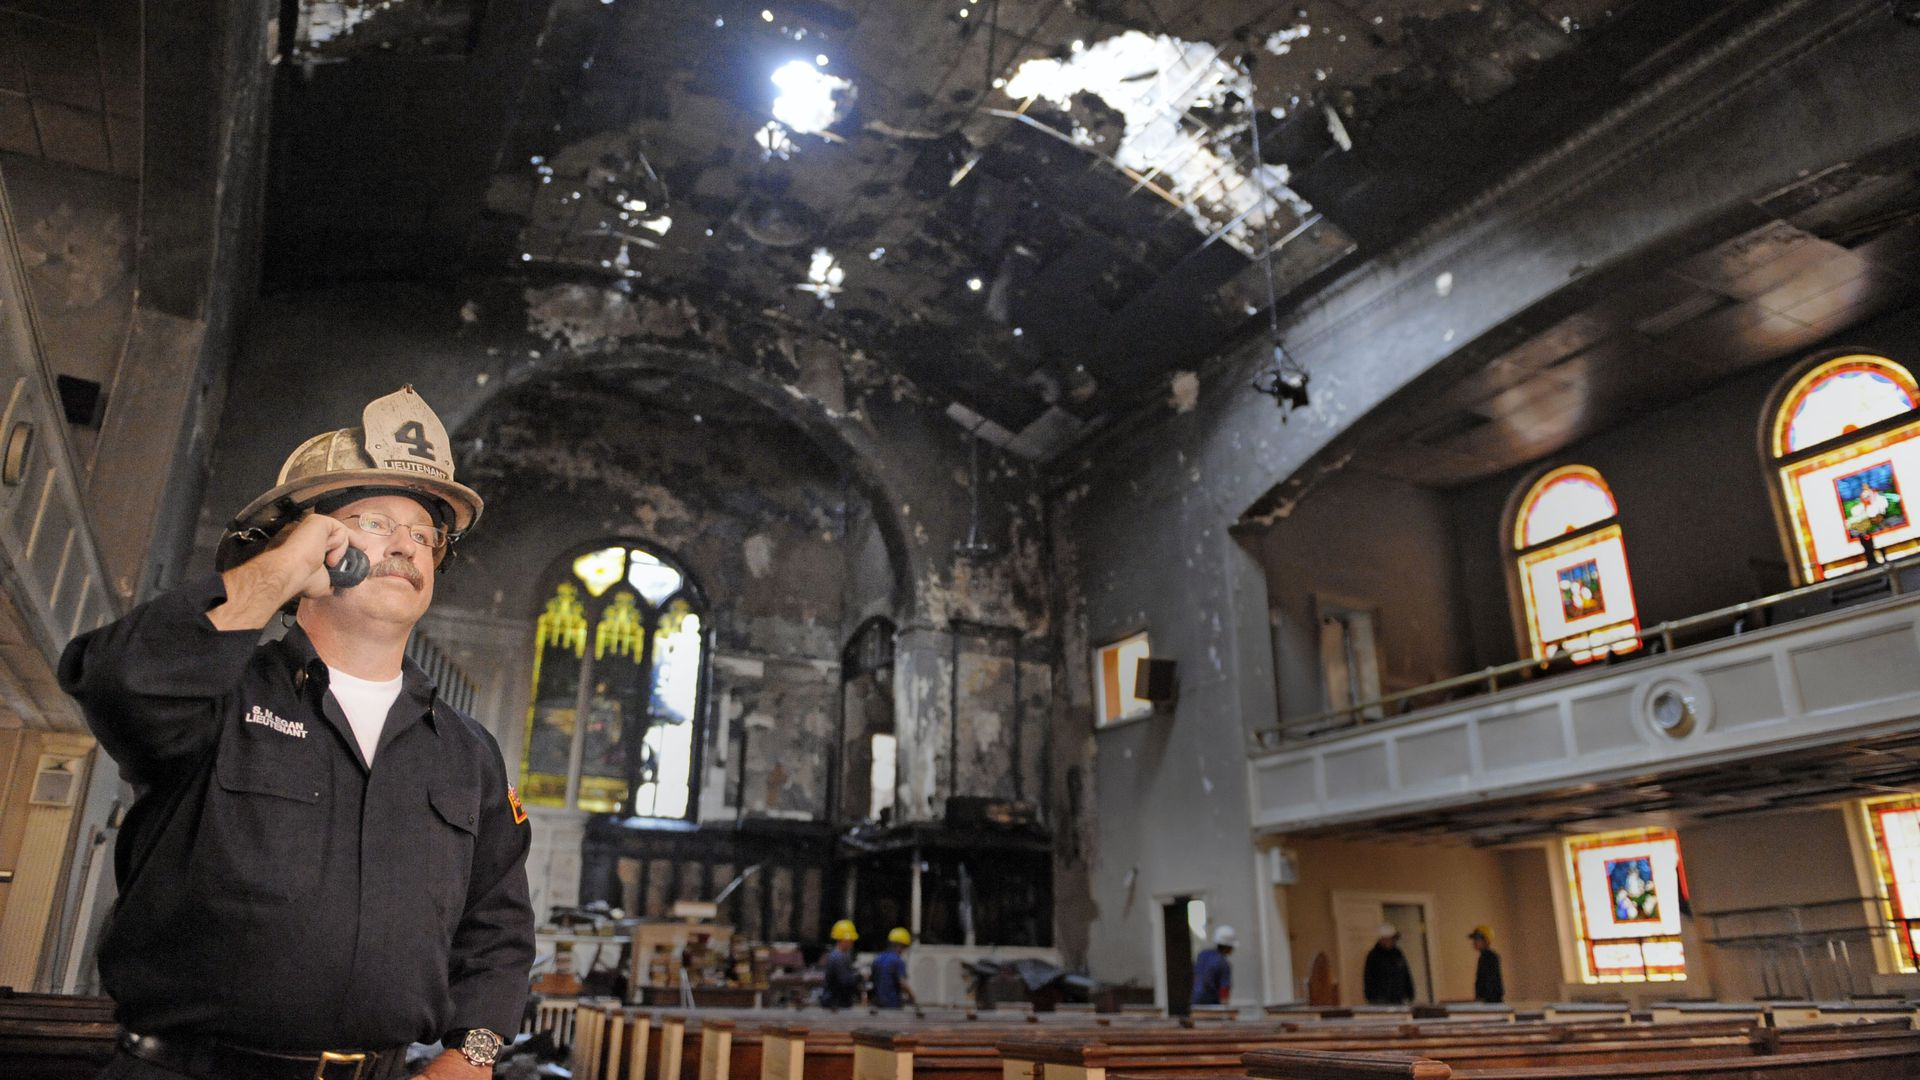 Fire Lt. Sean Egan makes a cell phone call in the burned out interior of Meridian Hill Baptist church.